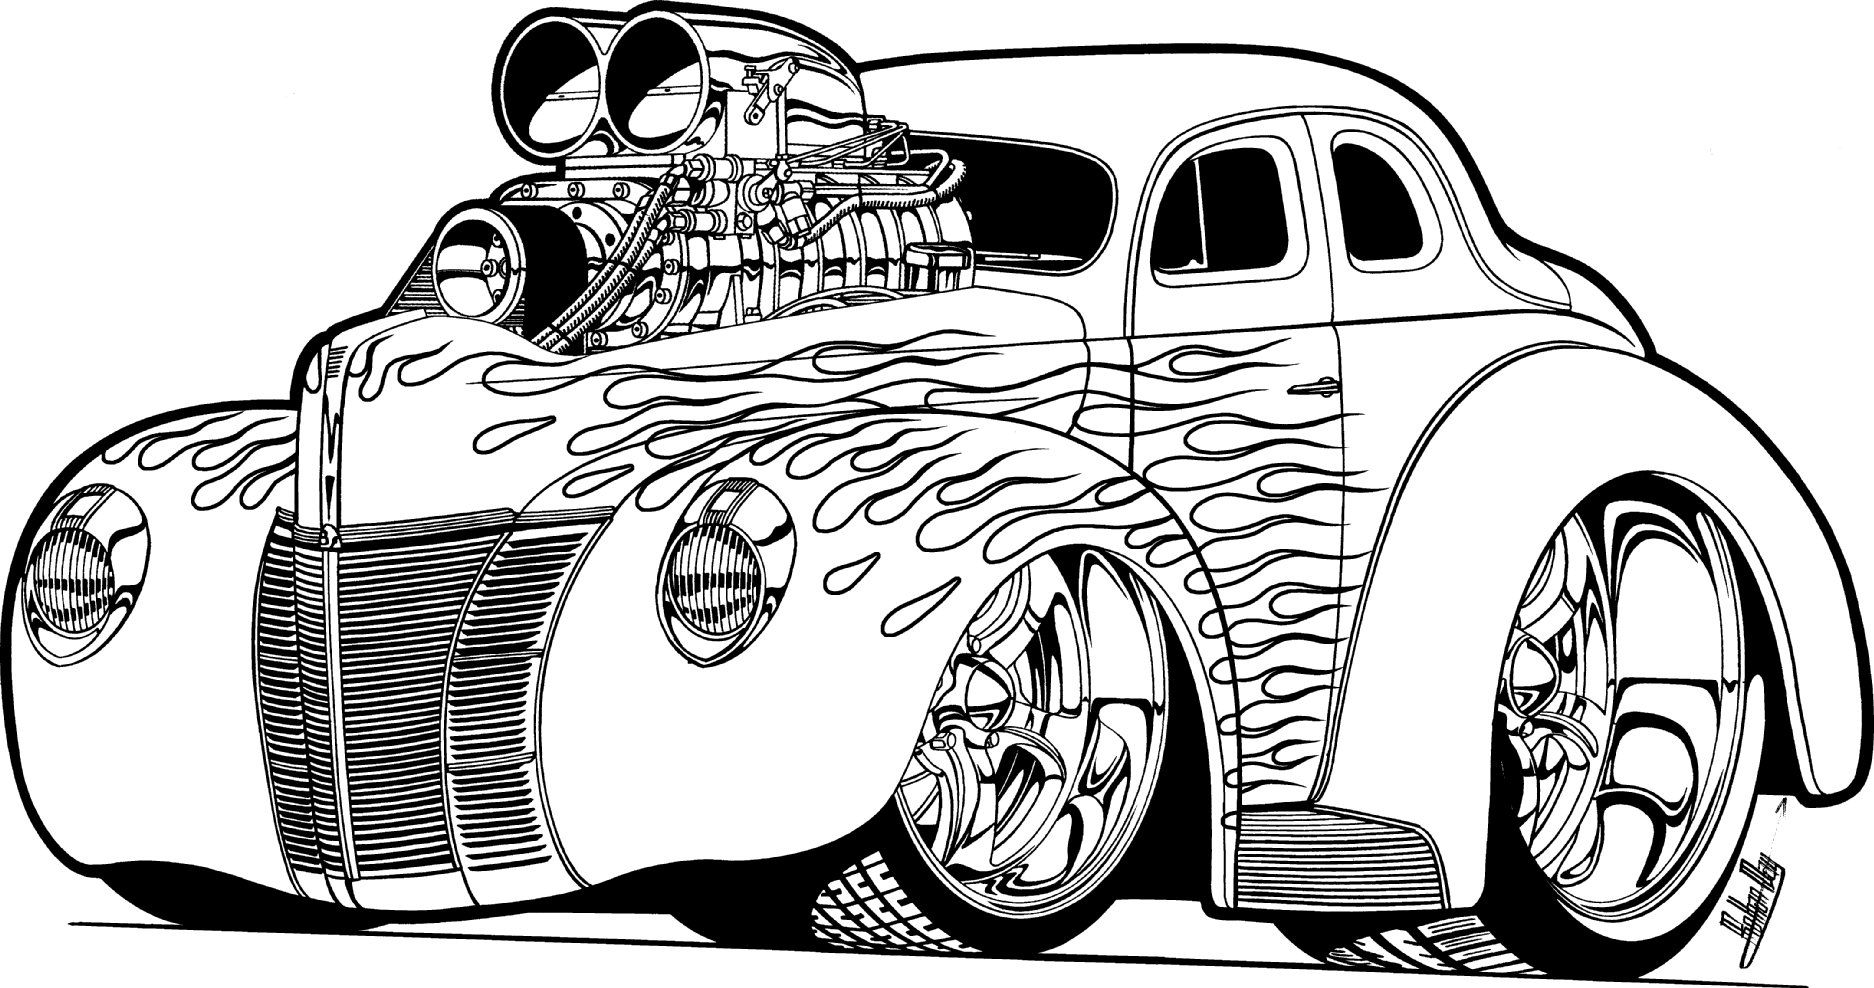 awesome car coloring pages car coloring pages for adults coloring pages coloring car awesome pages